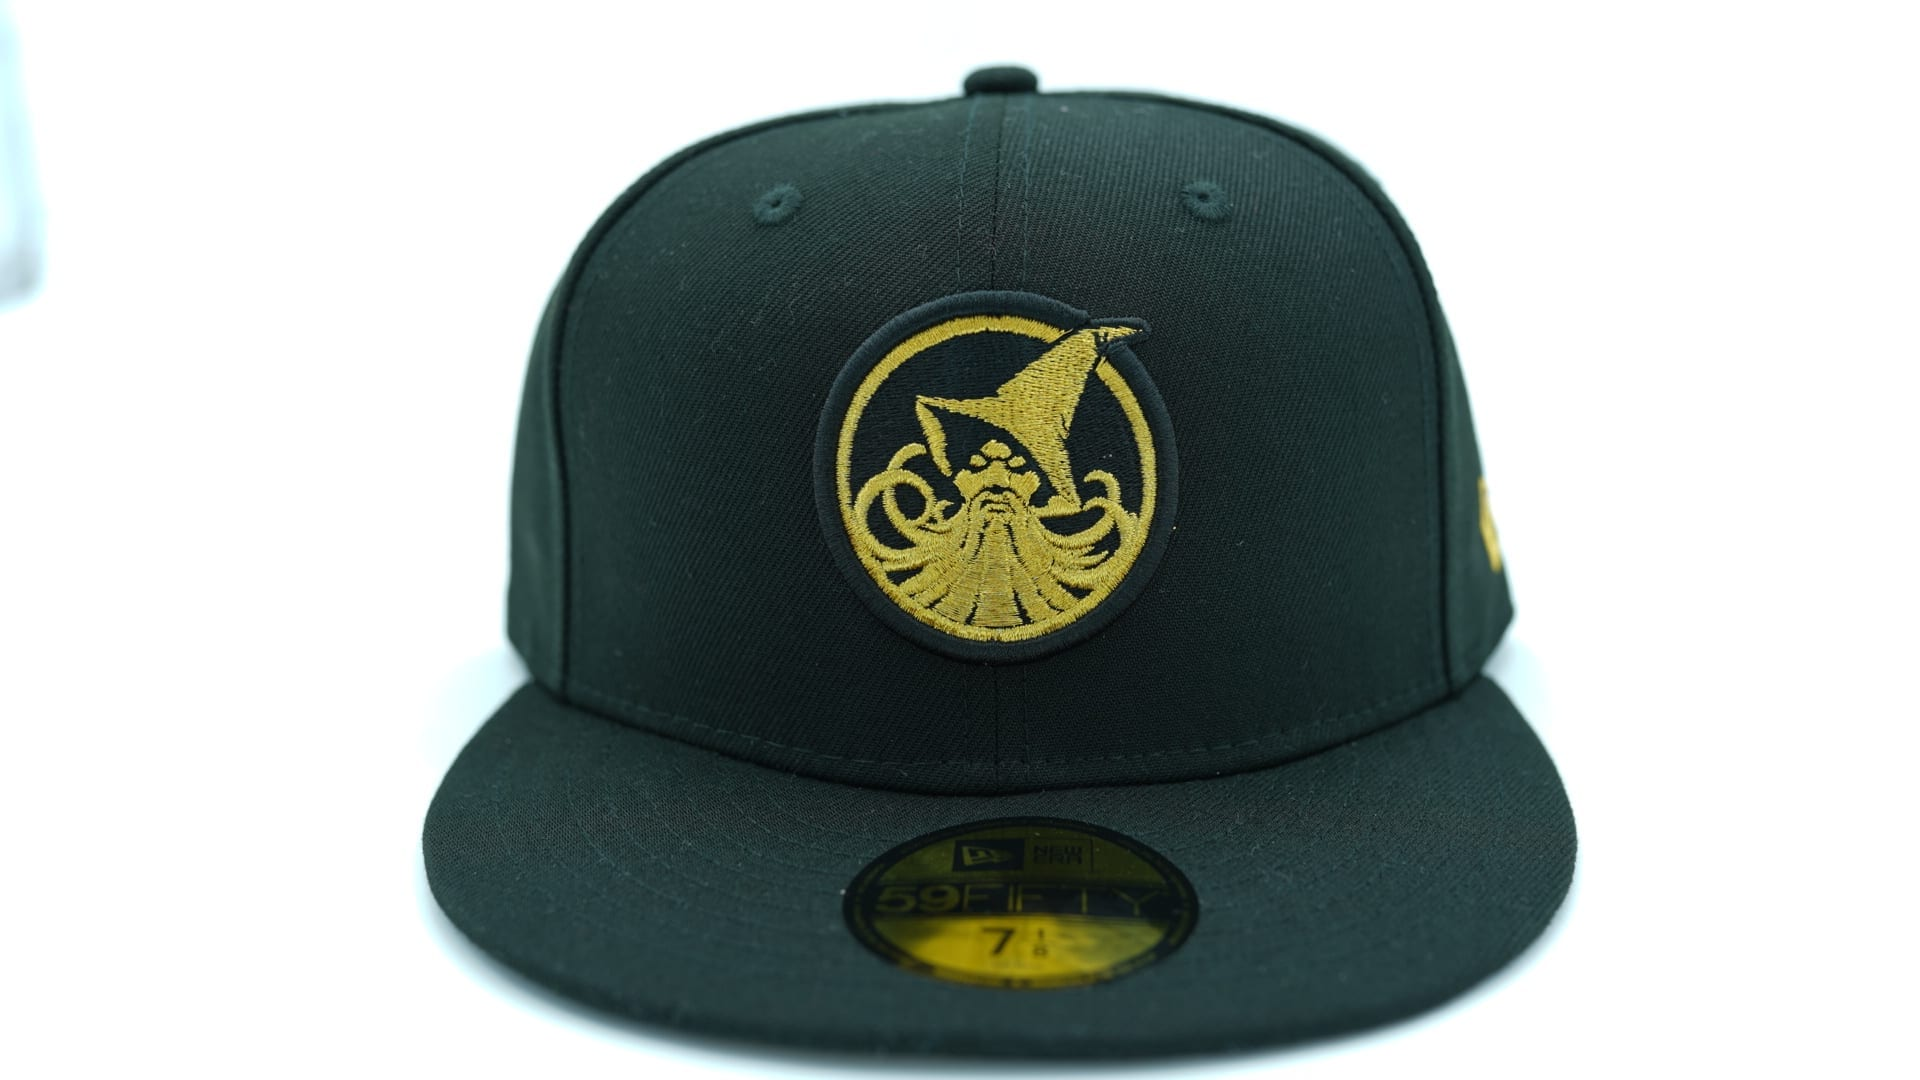 low profile fitted baseball cap hats cavaliers crown era